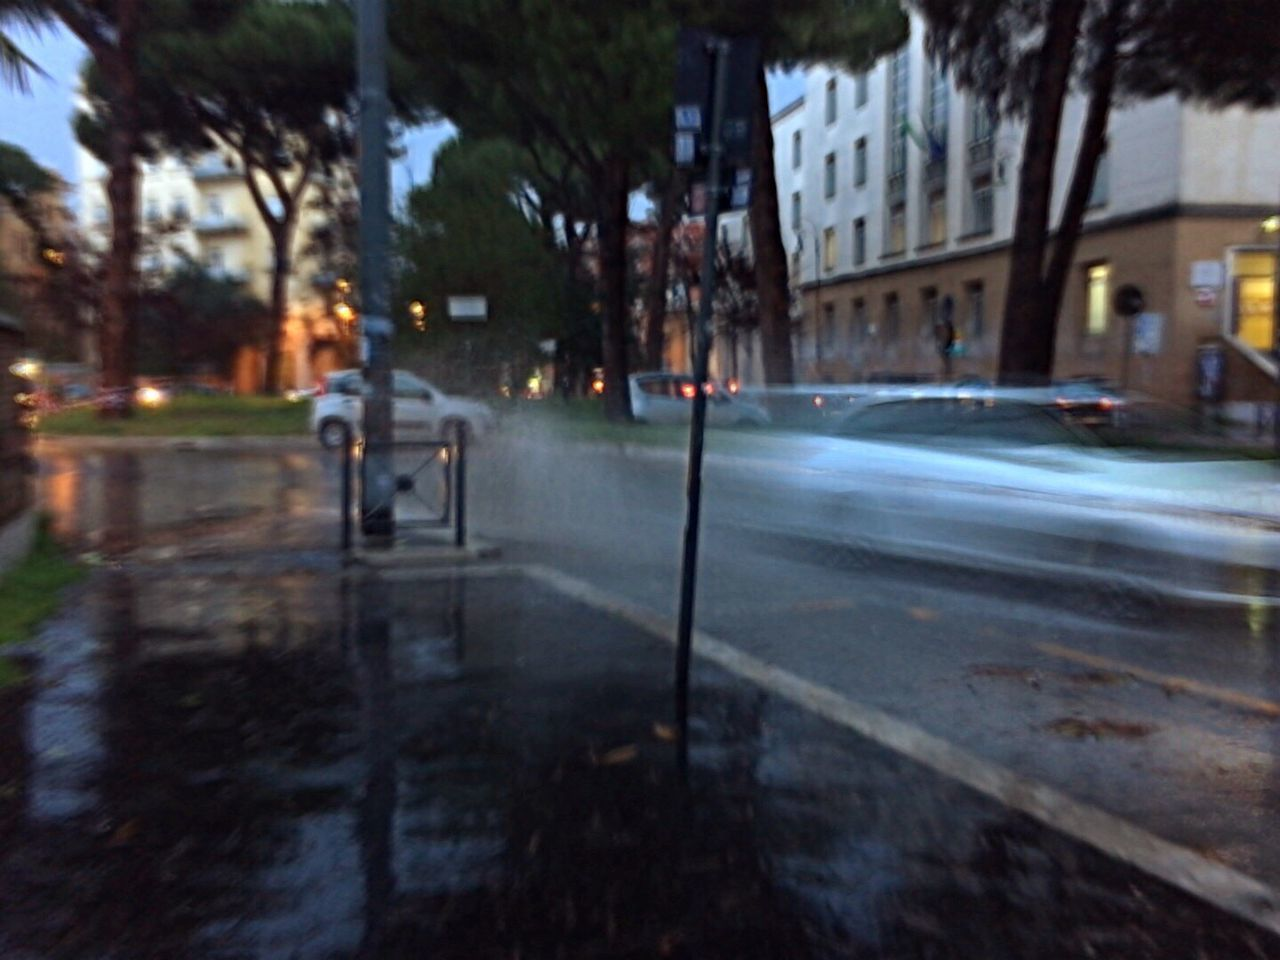 Blurred Motion Of Cars On Wet Road In City